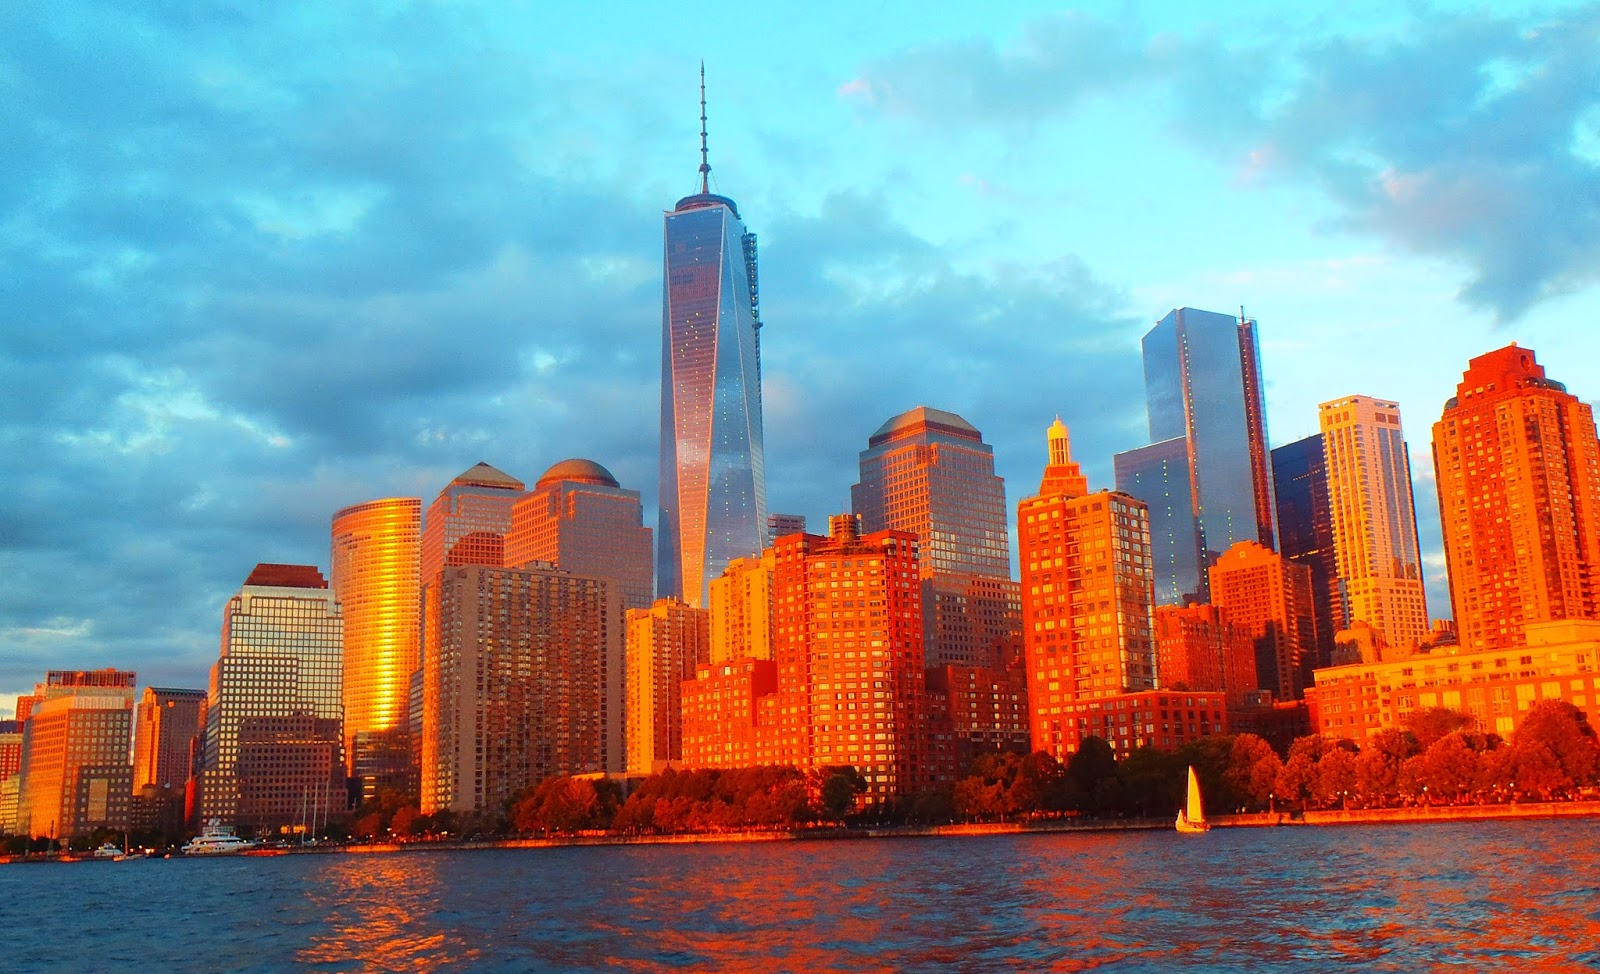 The sun setting on New York city skyline